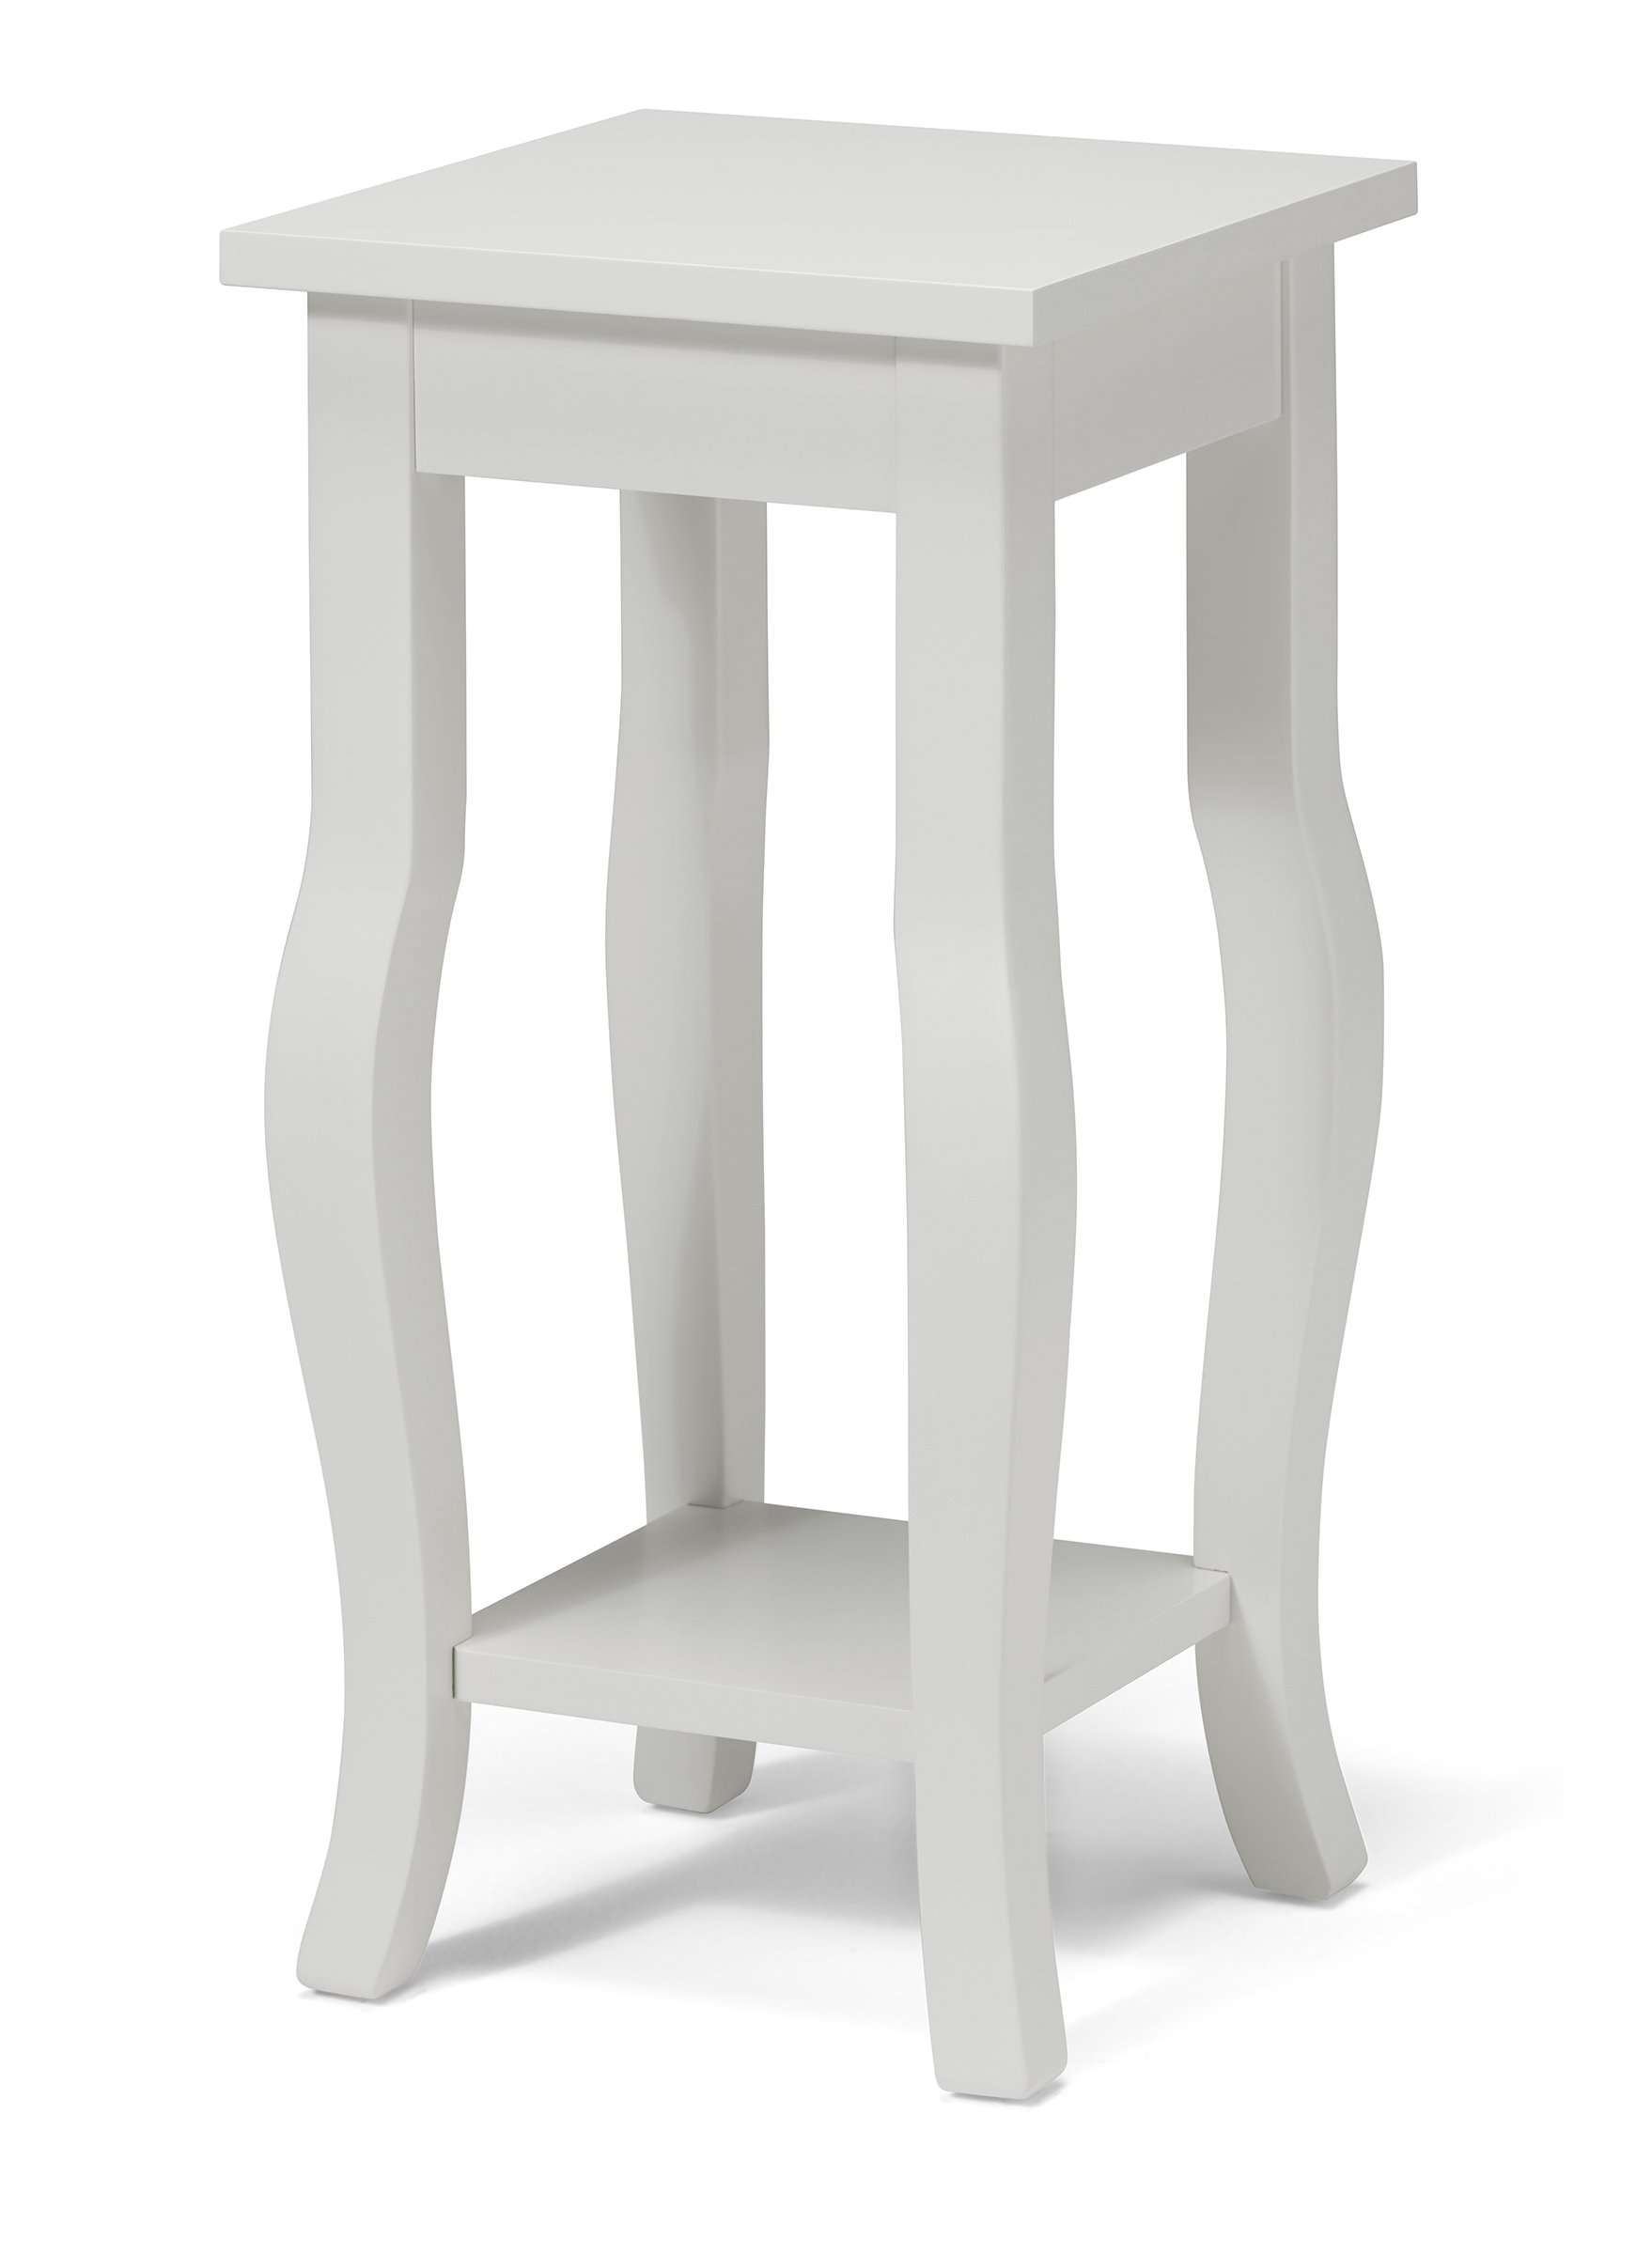 Kate and Laurel Lillian Wood Pedestal End Table Curved Legs with Shelf, 12'' x 12'' x 24'', True White